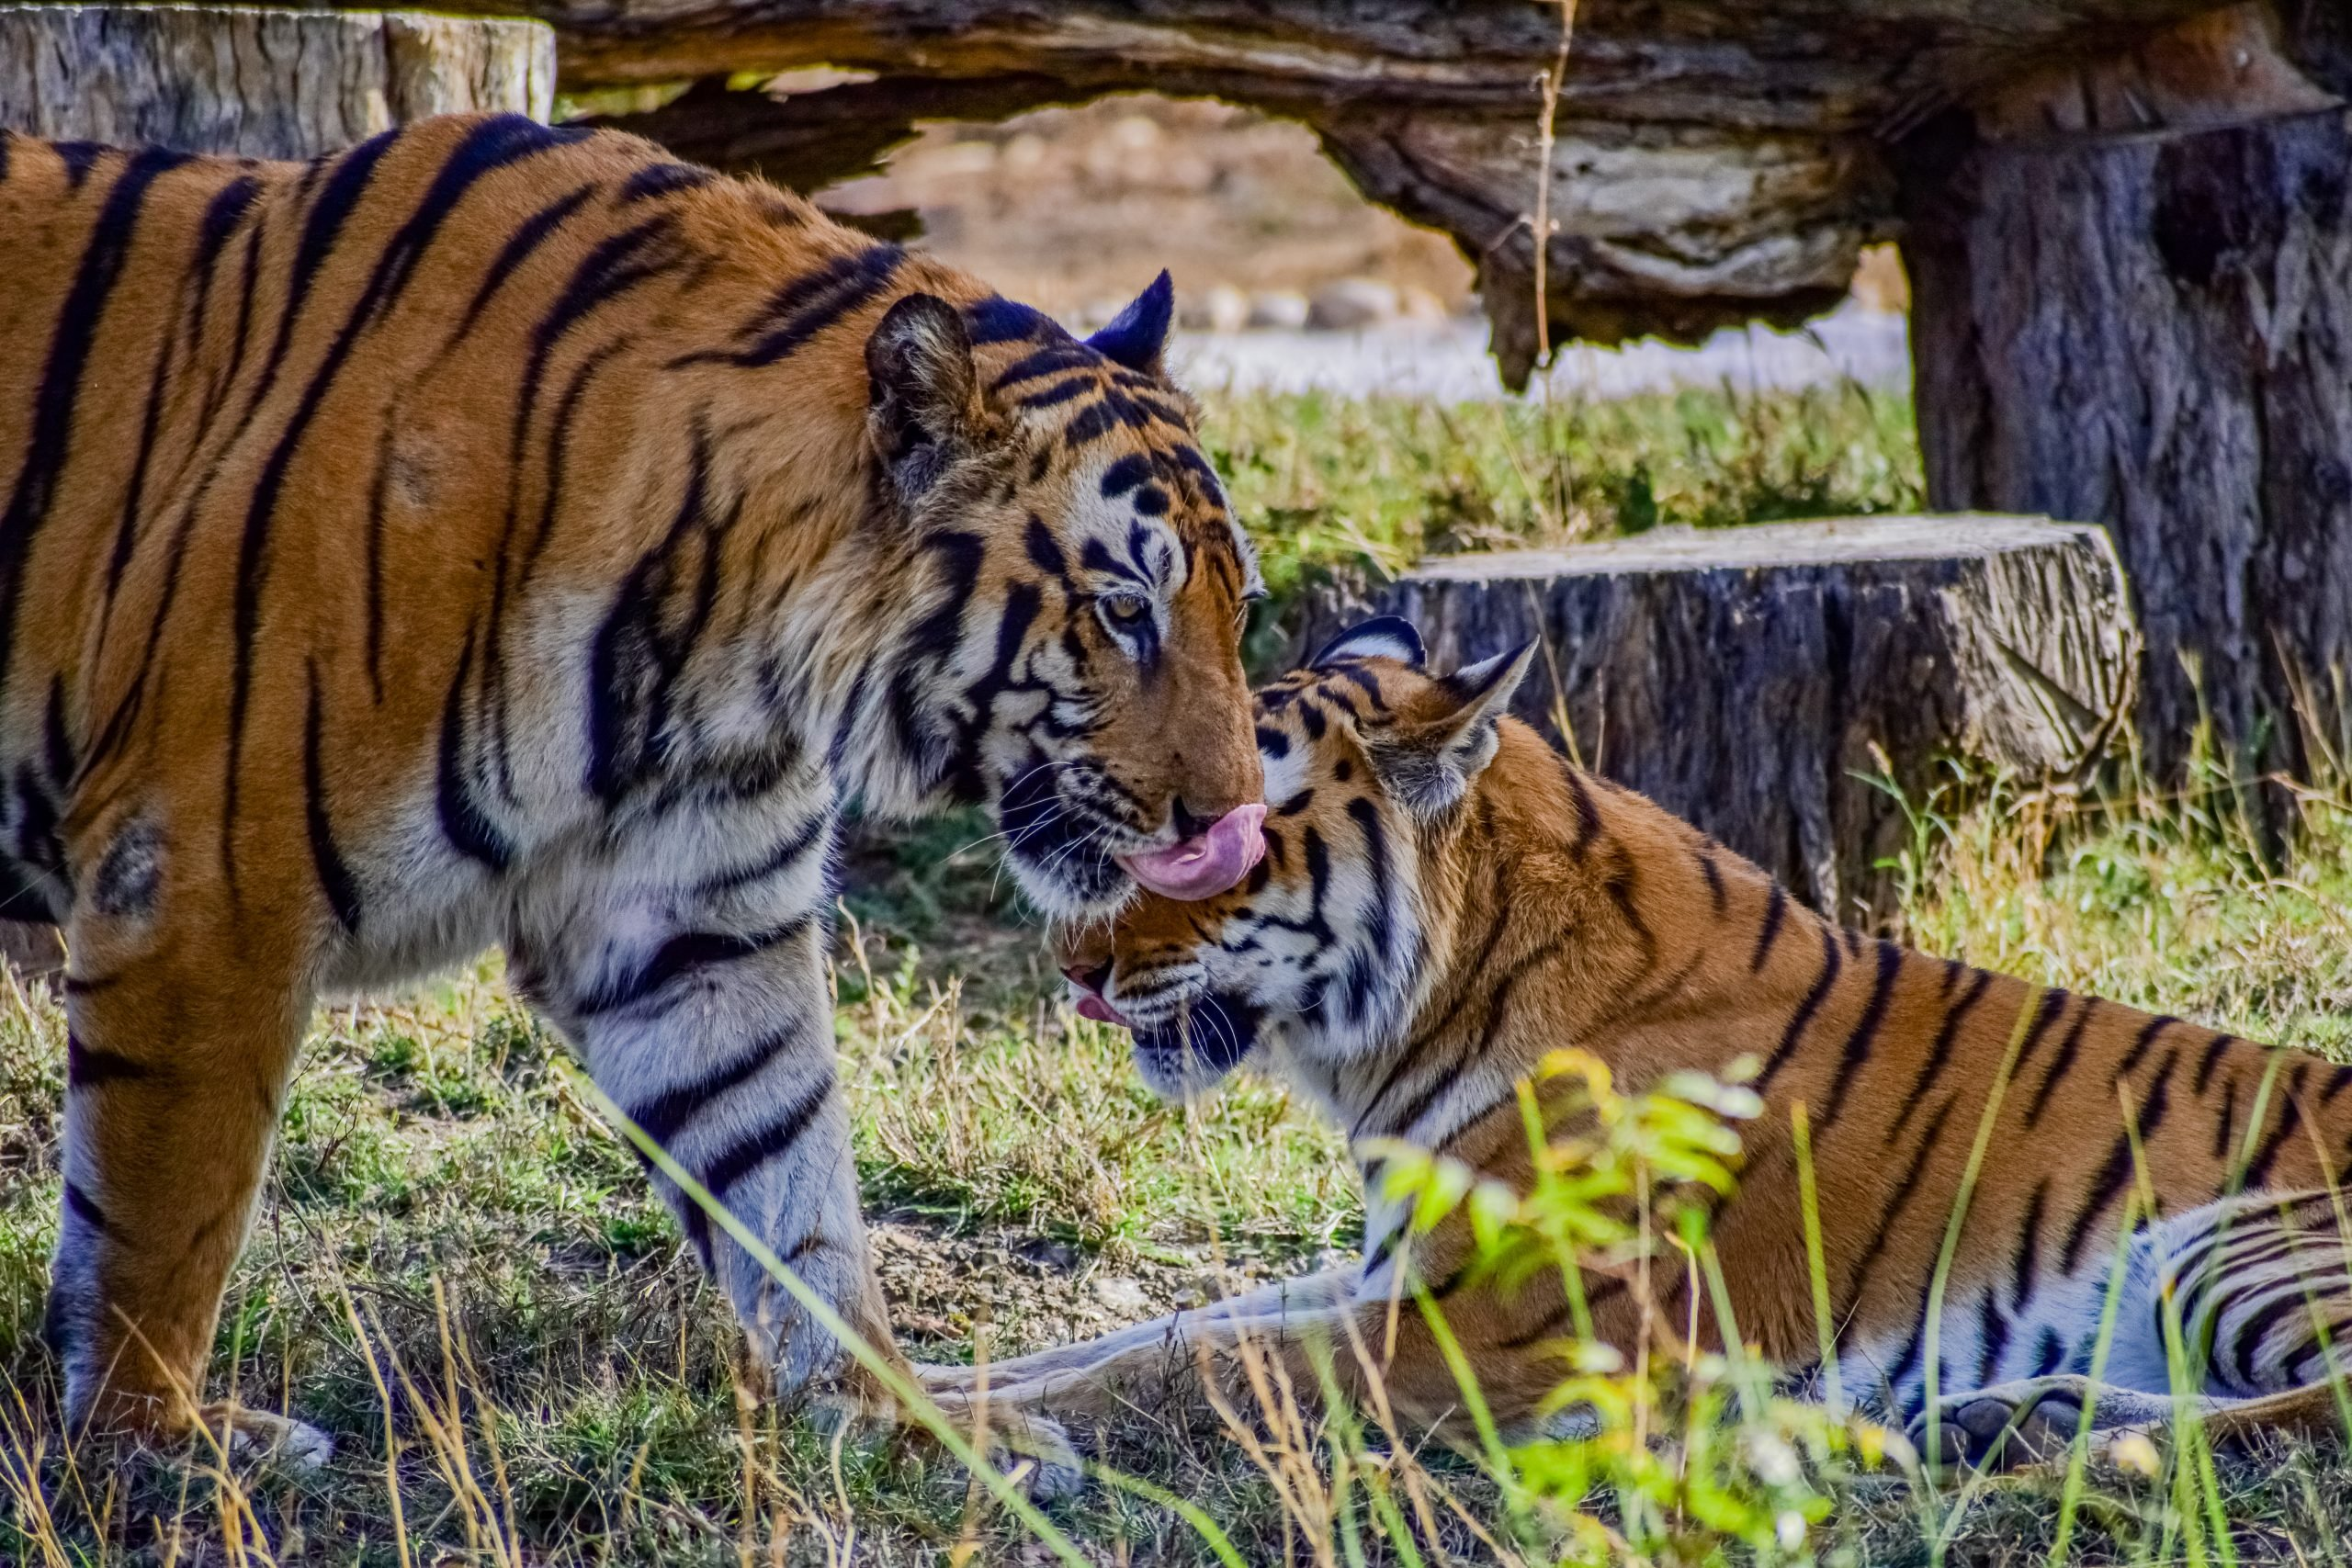 Bengal tigers in a zoo